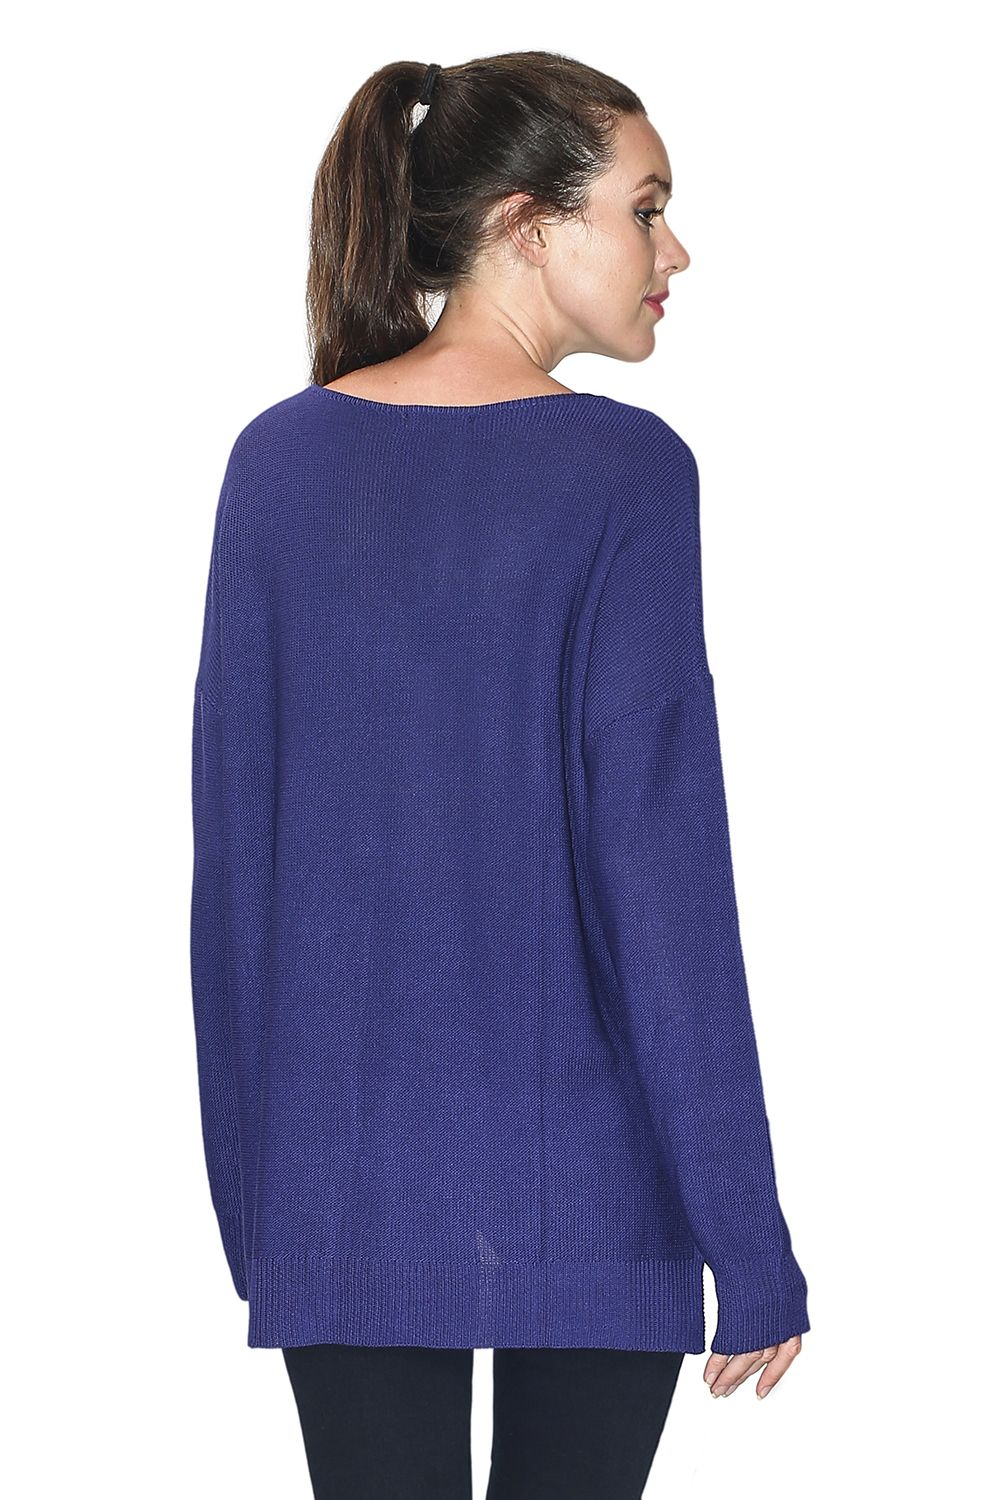 Assuili Longline V-neck Sweater with Side Splits in Navy